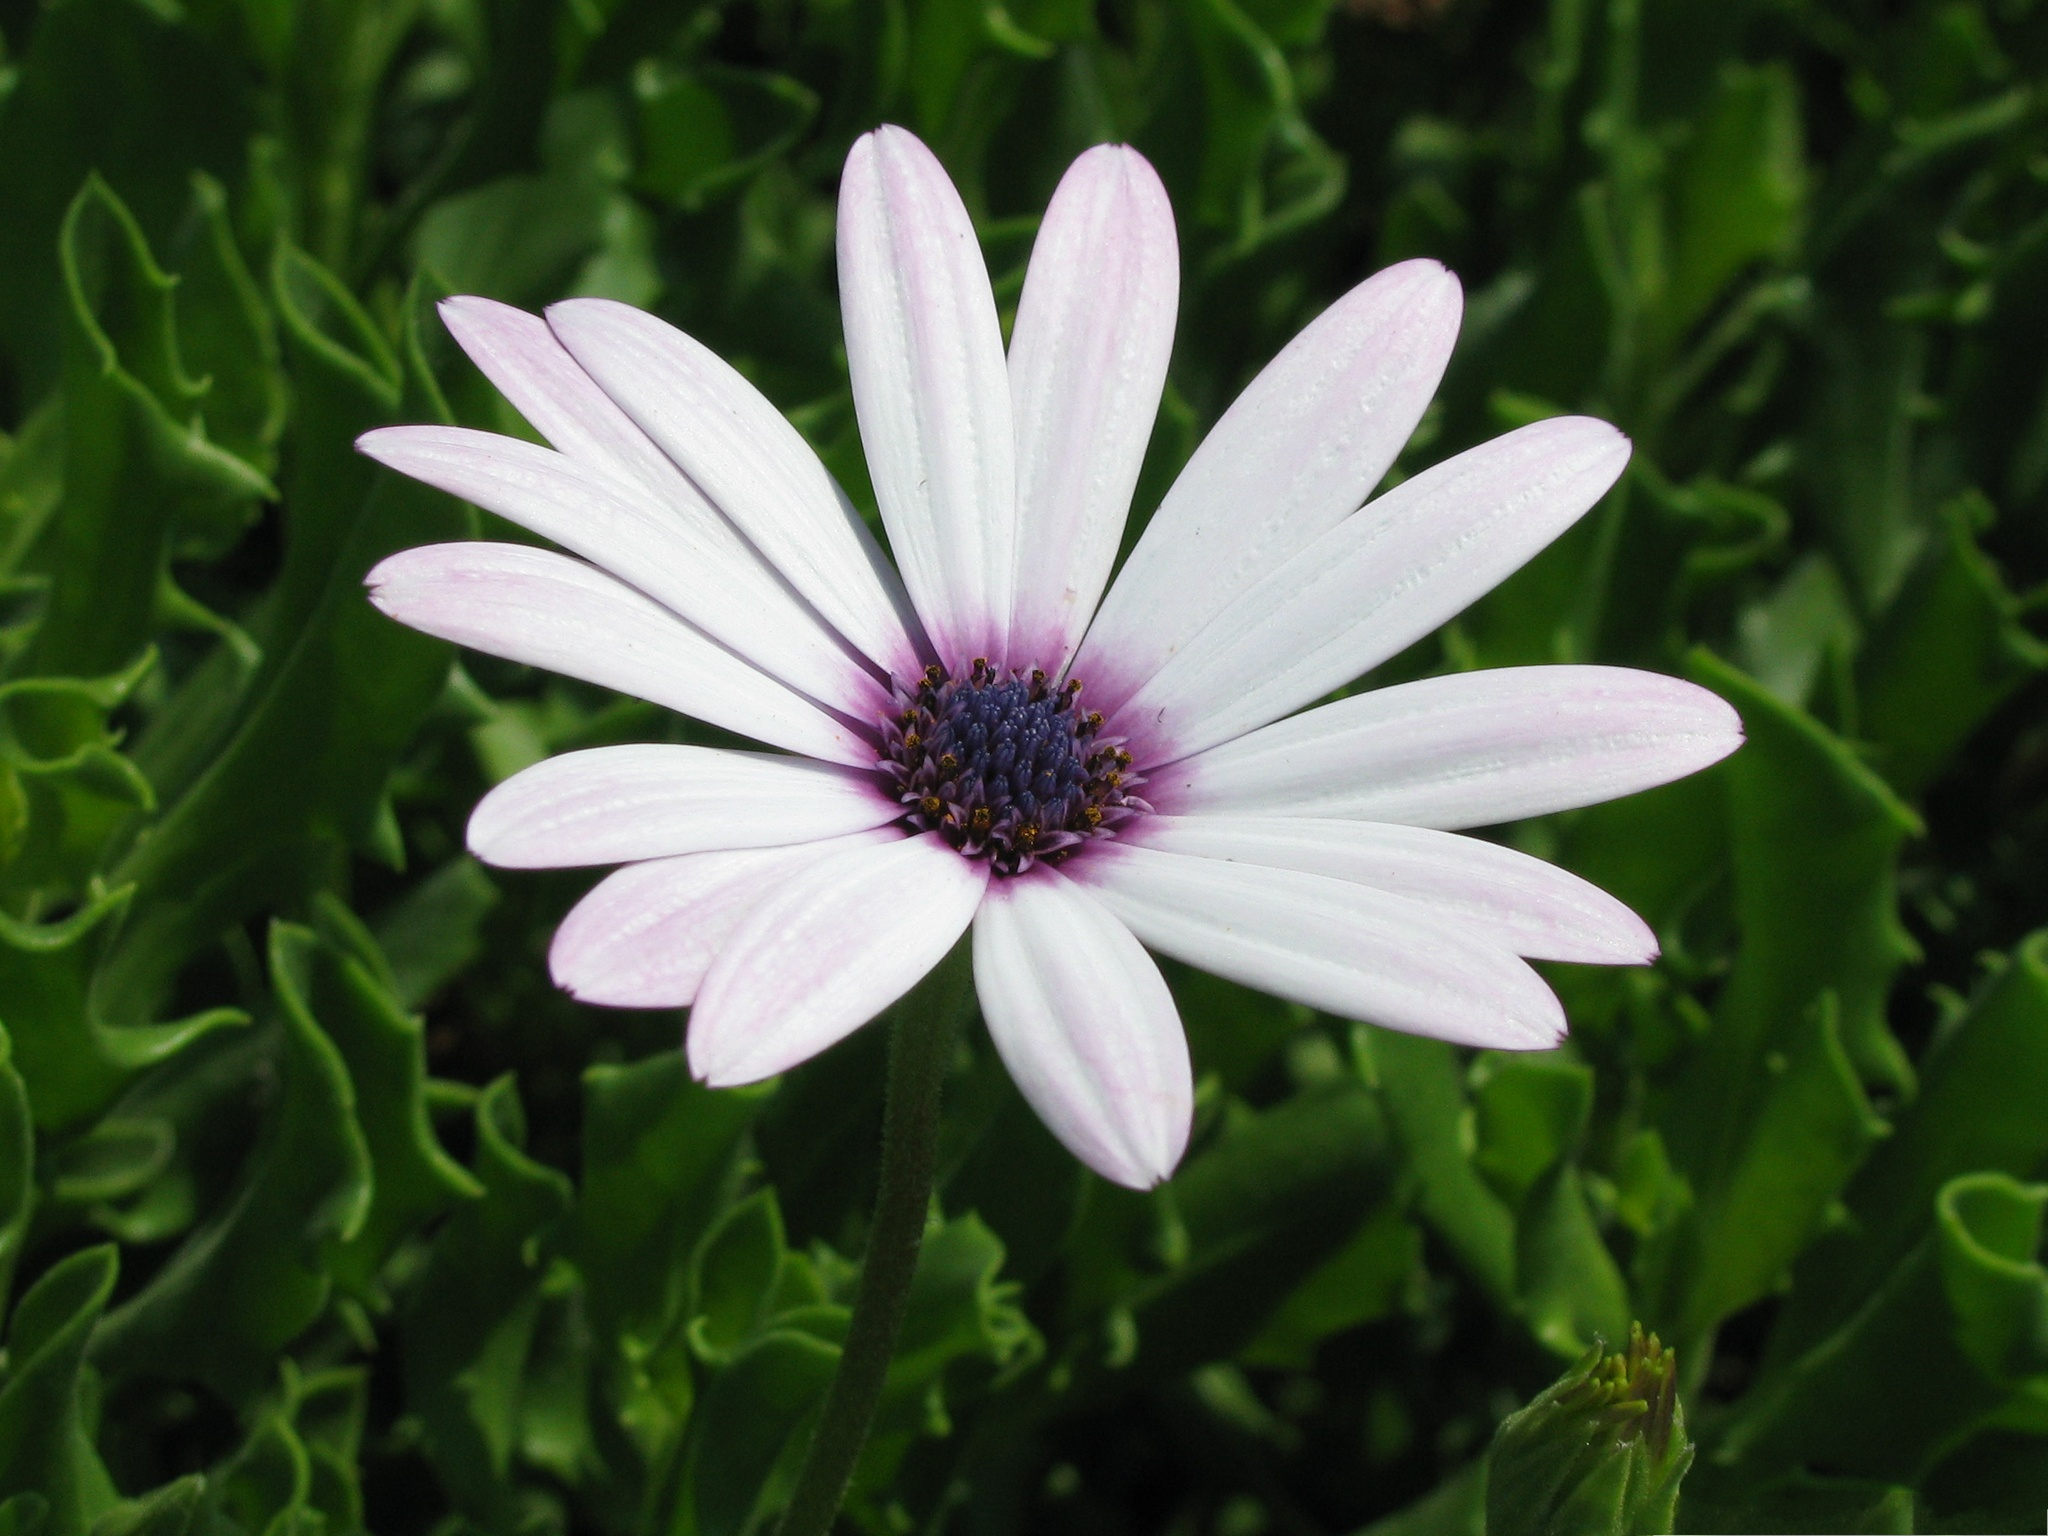 Cape Daisy Flowers White Small Flower in Bloom Green Grass and Leaves Aroun